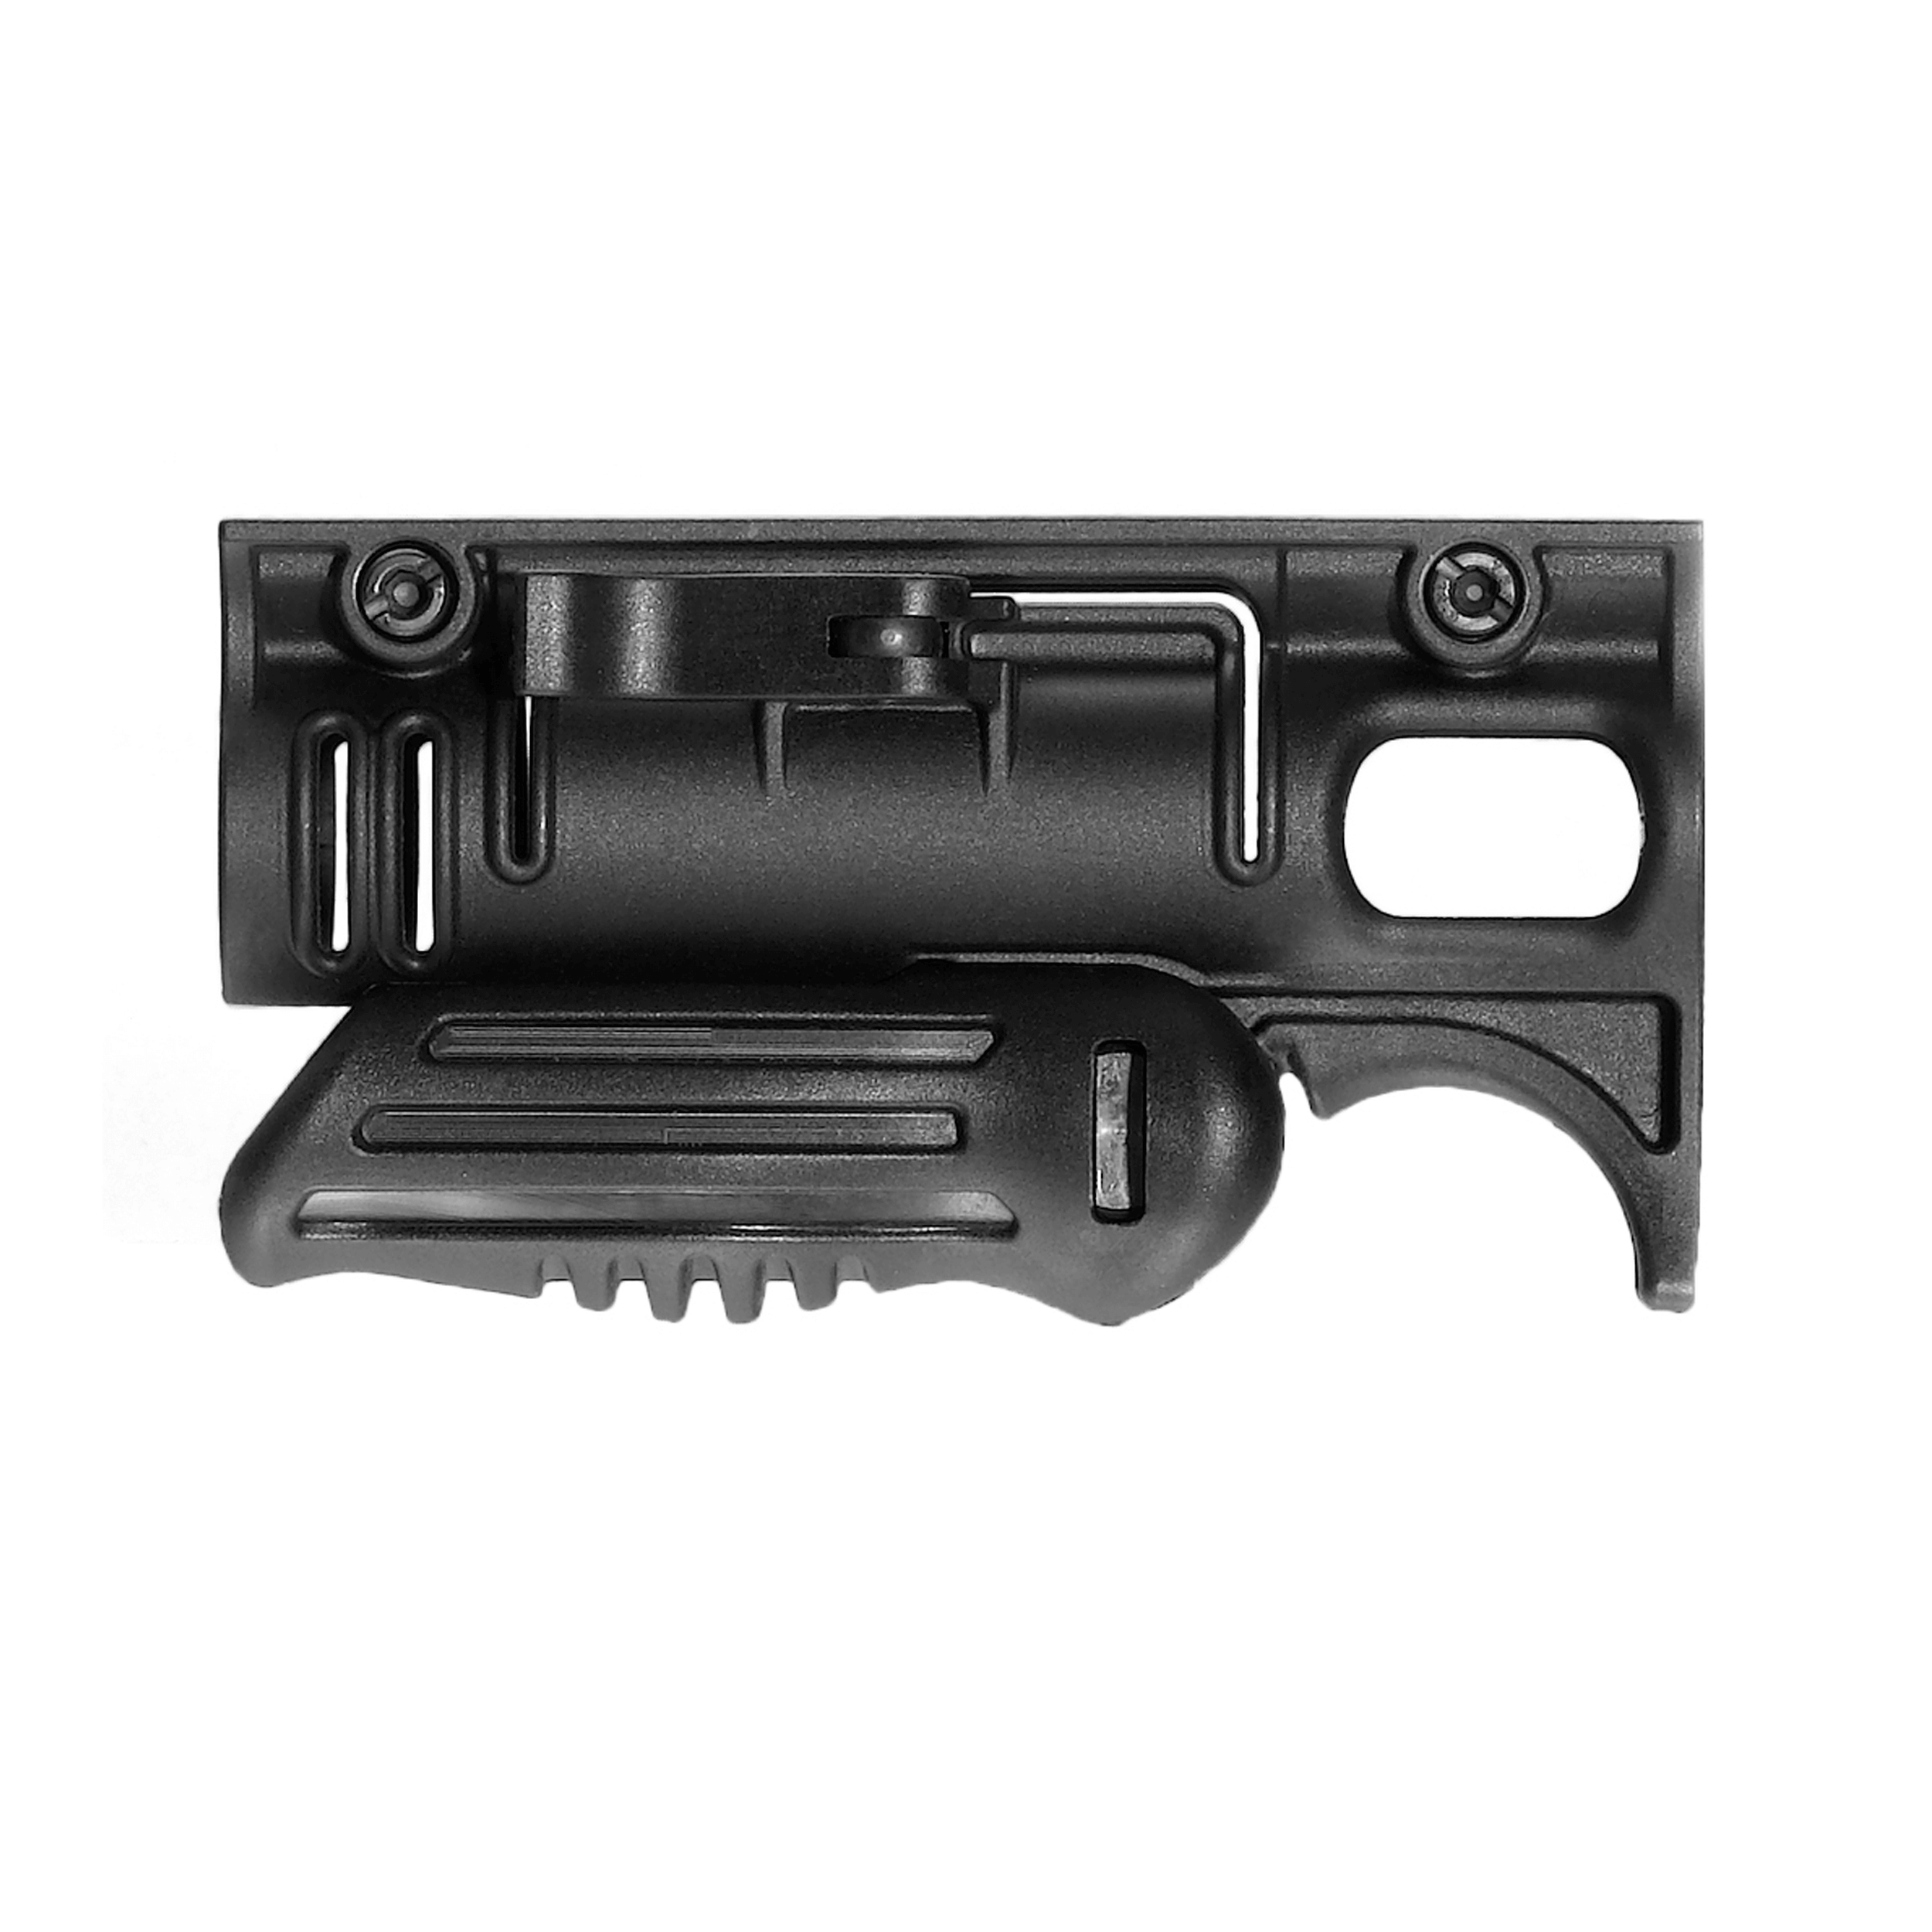 Two-Position Foregrip & Flashlight Mount